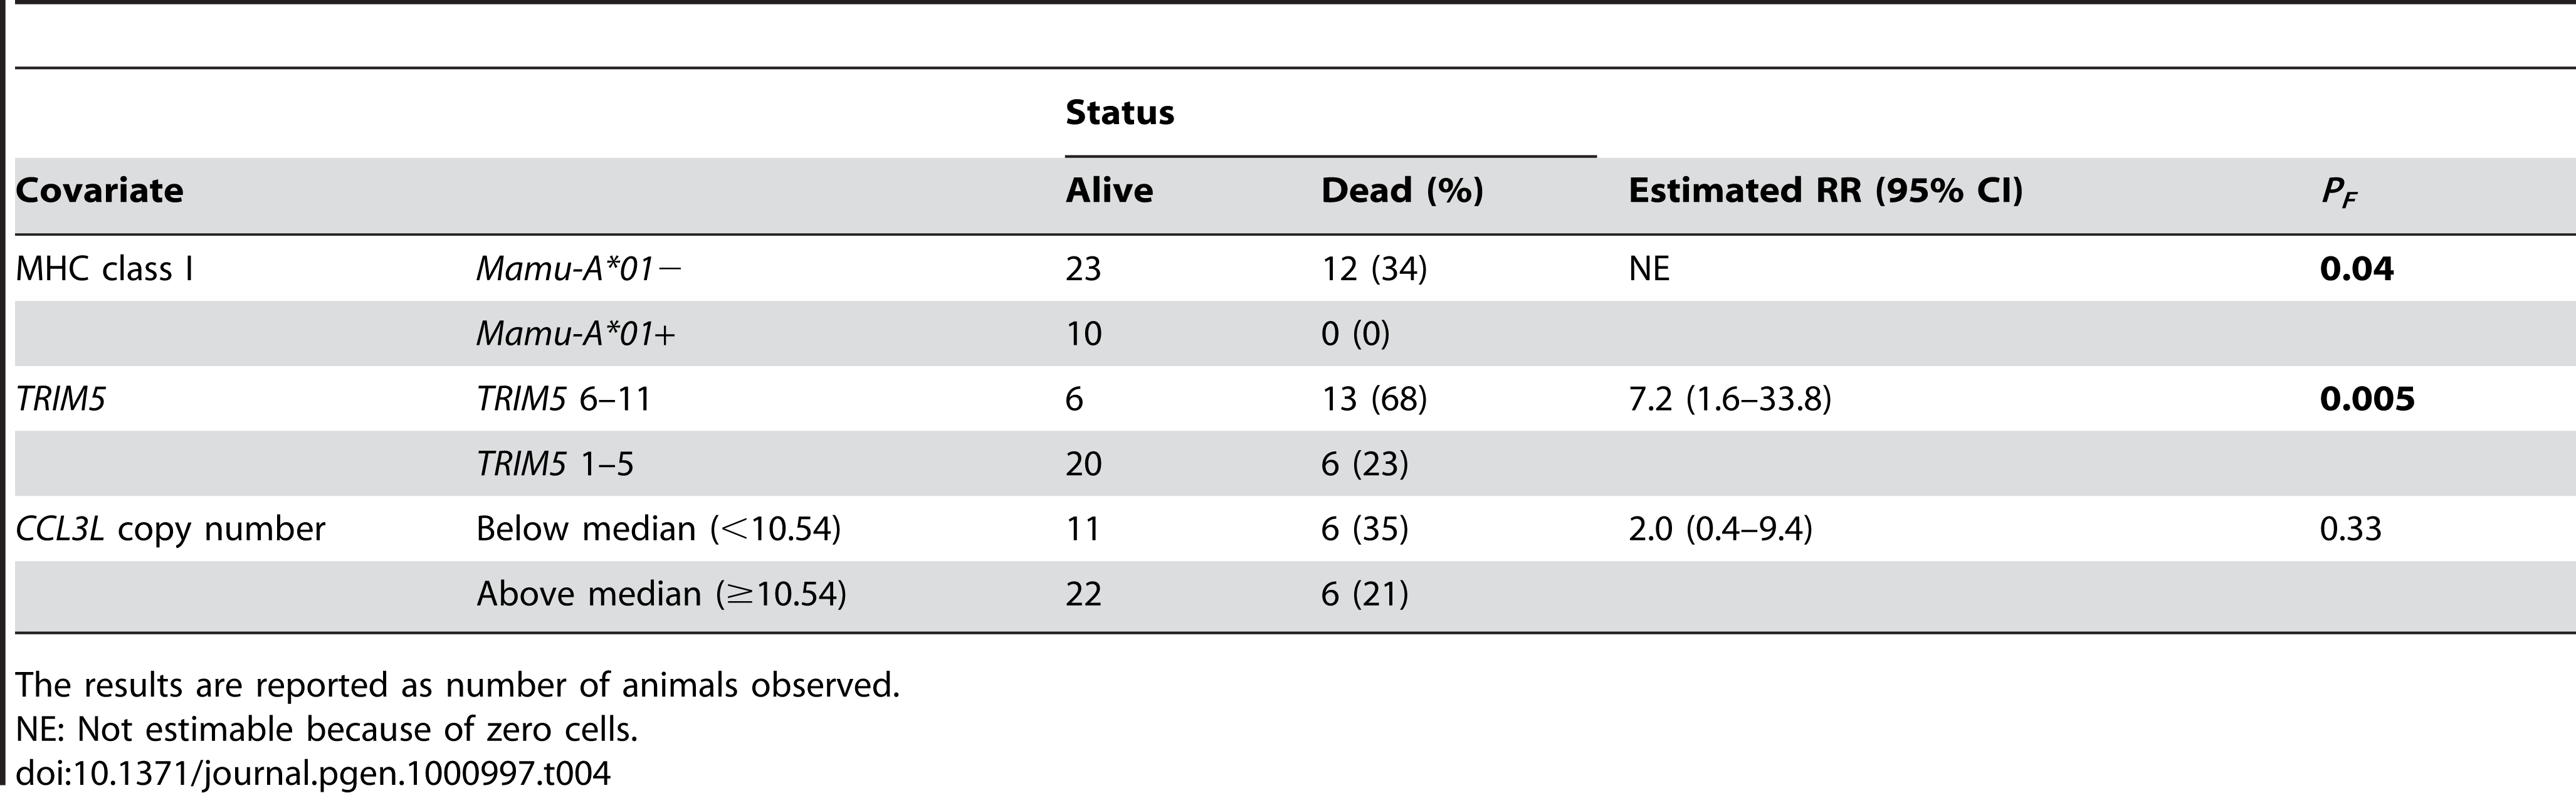 Analysis of the survival status on day 235 following SIVmac251 infection.